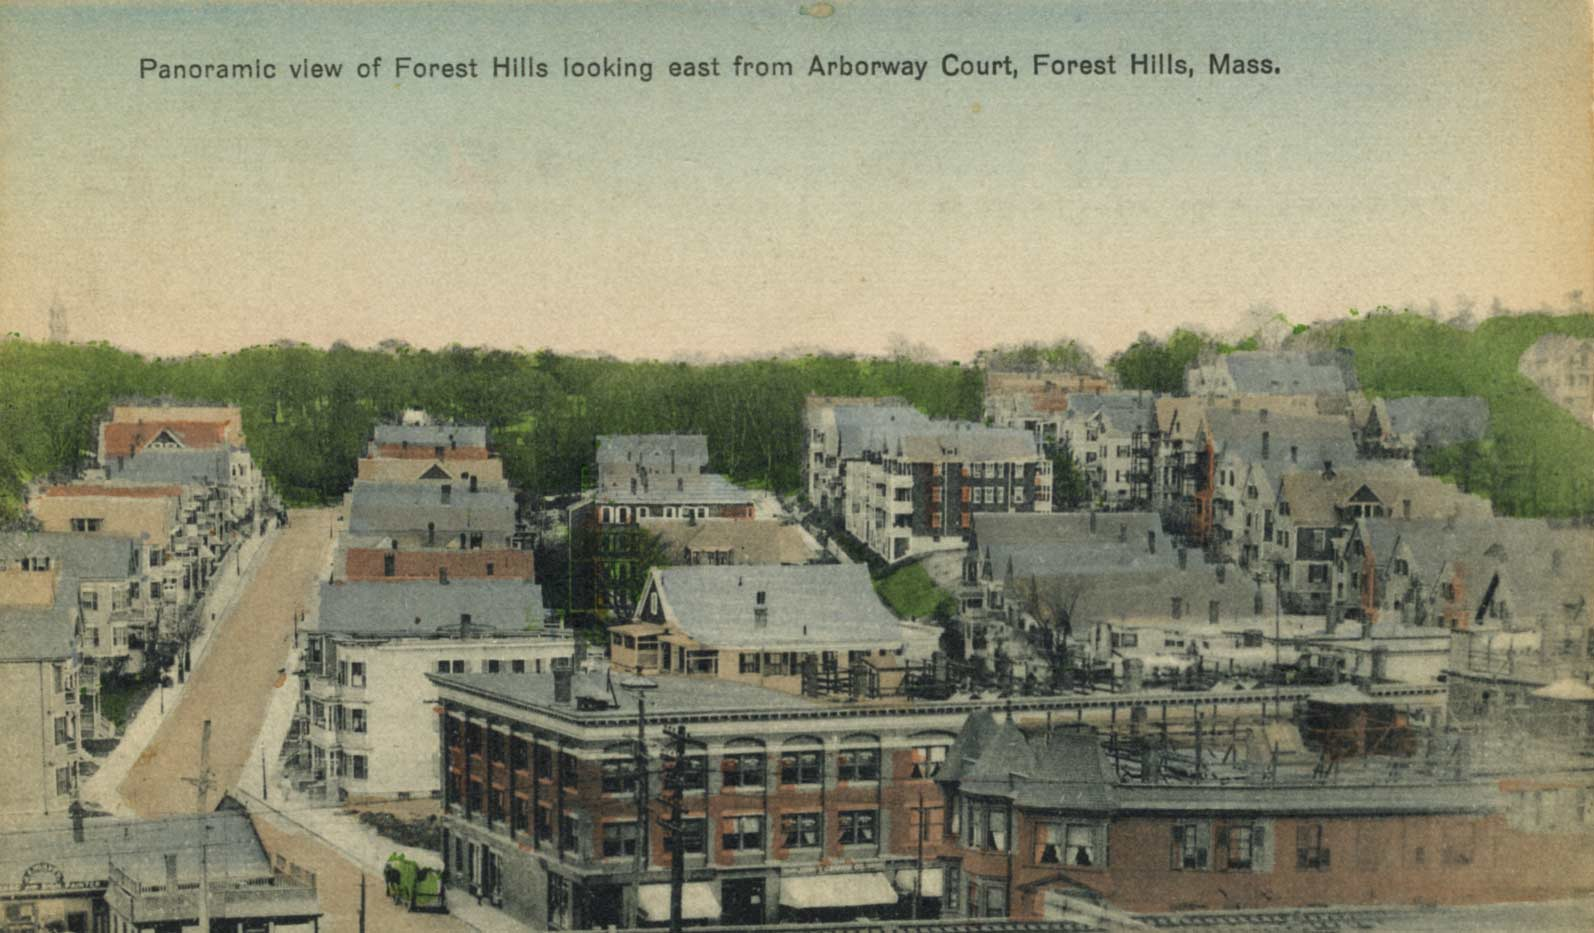 View of Forest Hills. Scanned from a postcard donated by Annie Finnegan, November 2007.